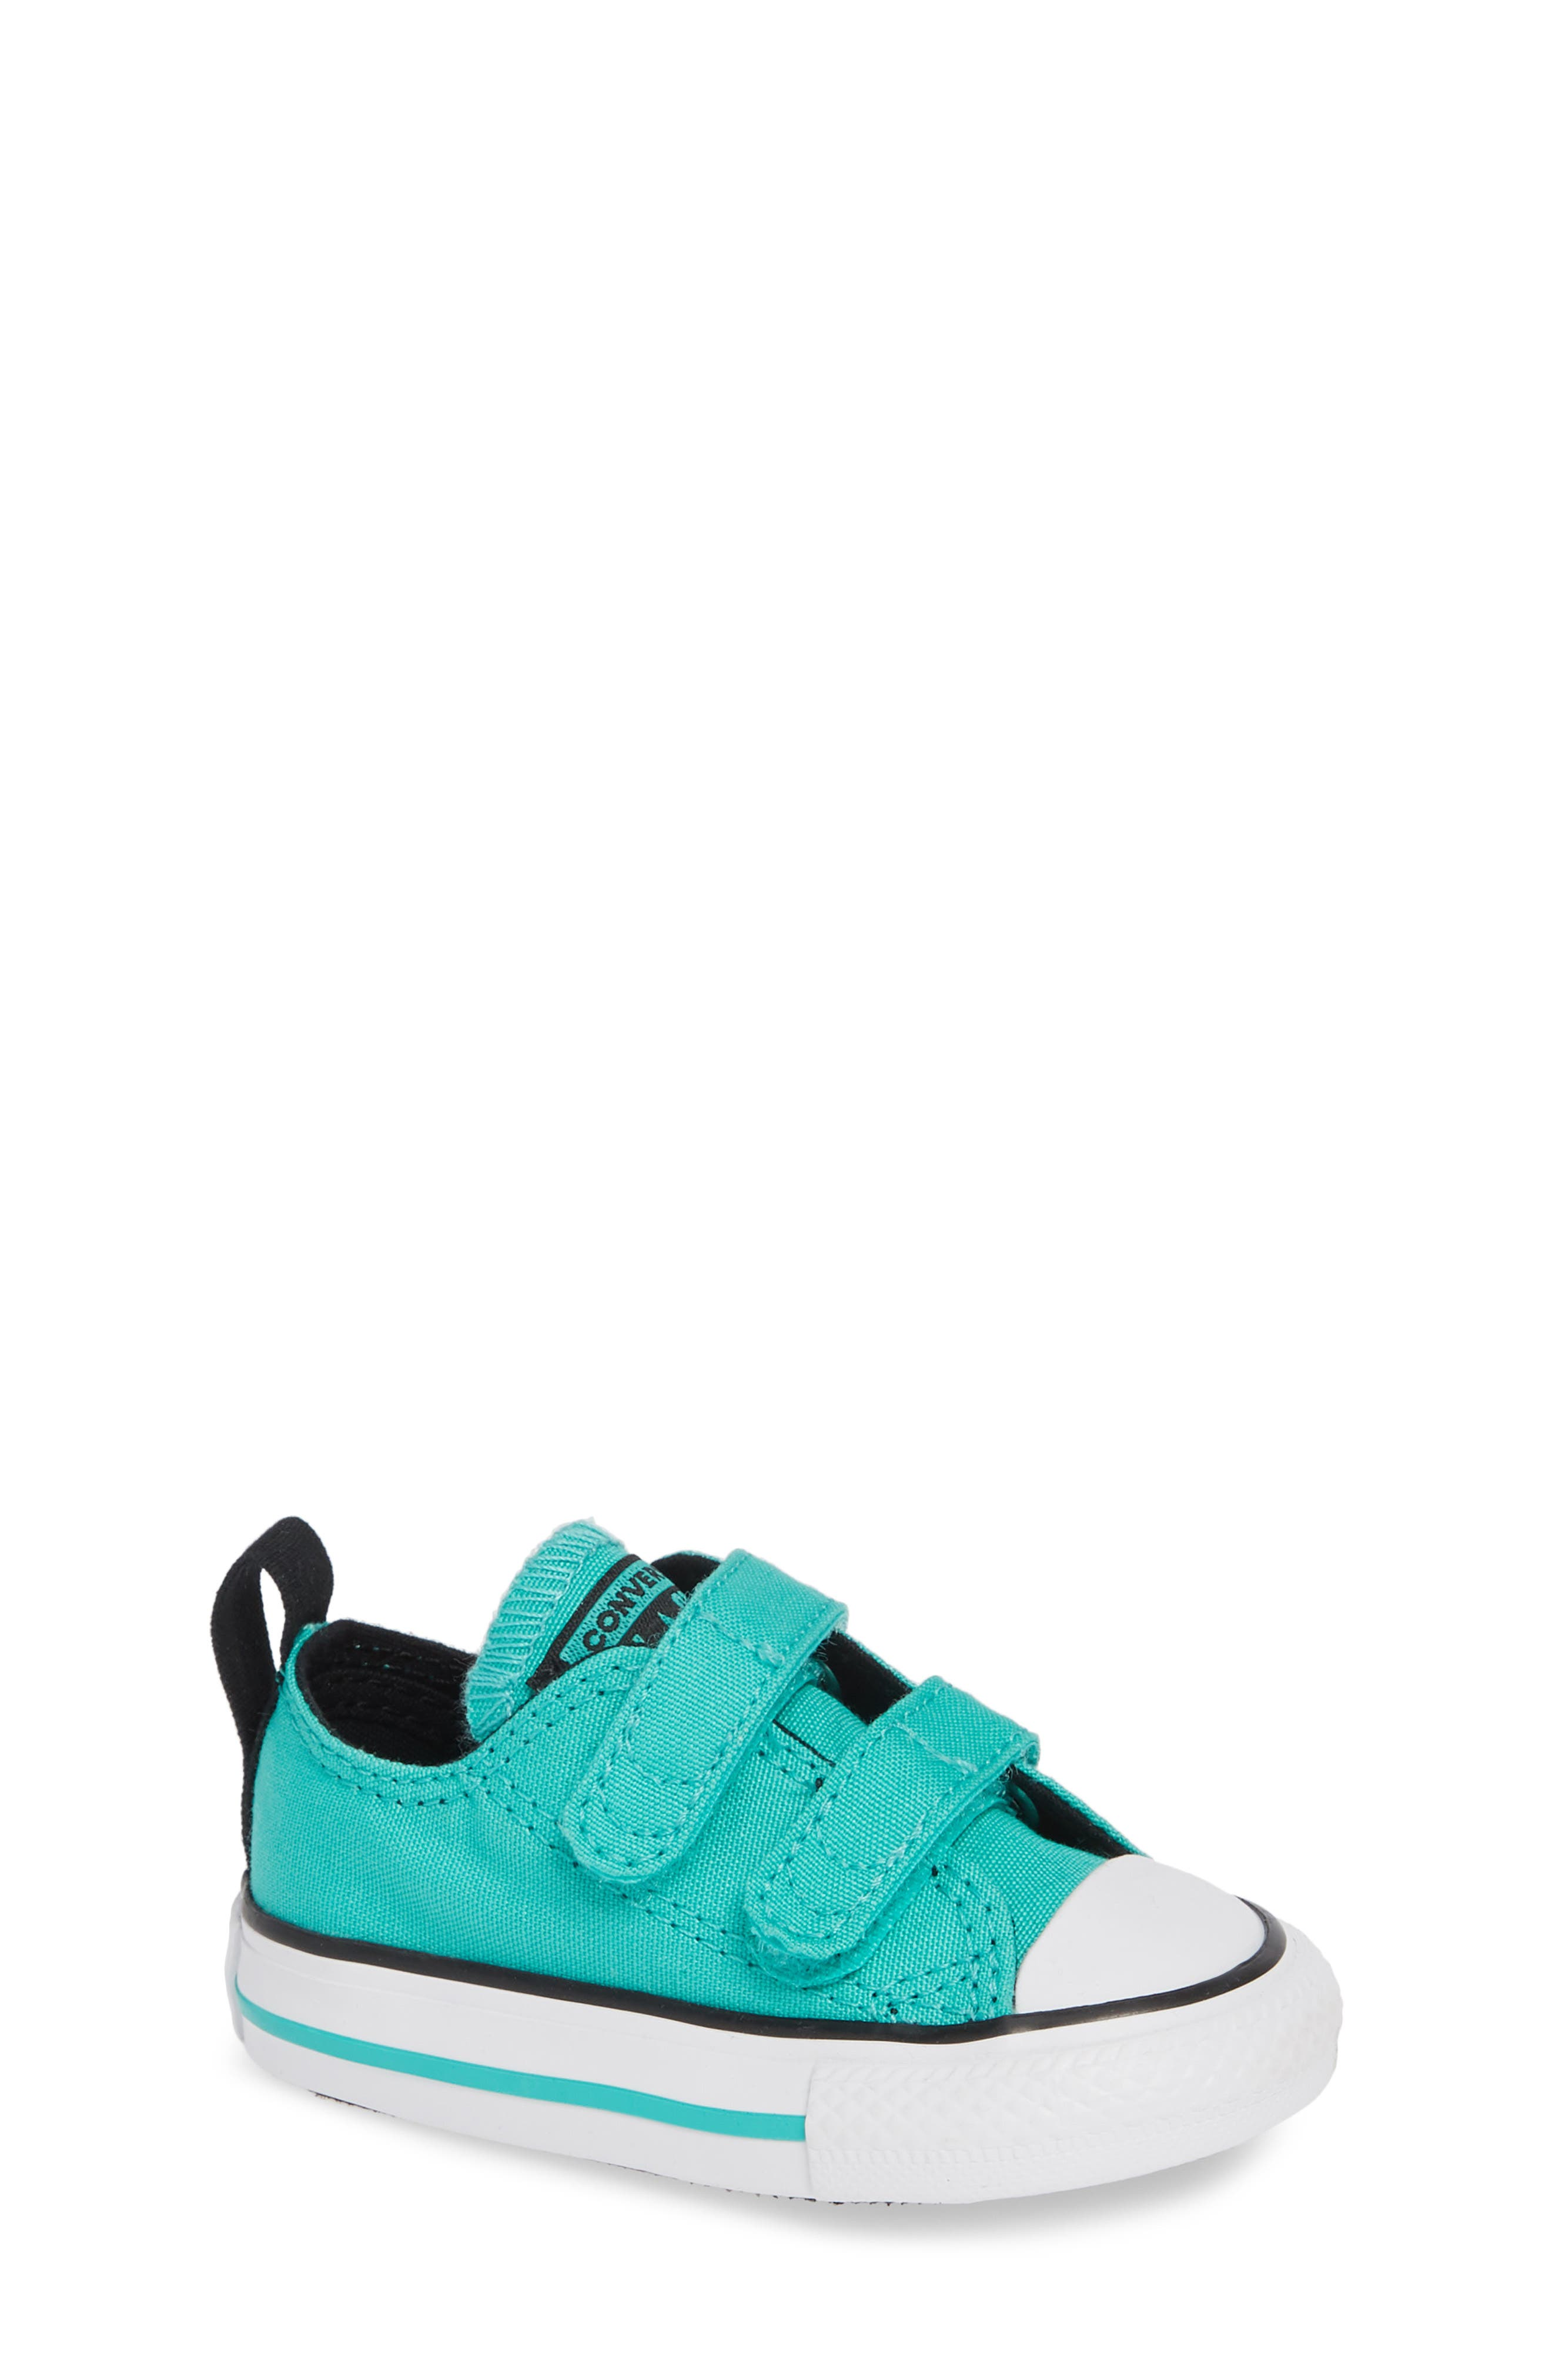 Chuck Taylor<sup>®</sup> 'Double Strap' Sneaker,                             Main thumbnail 1, color,                             PURE TEAL